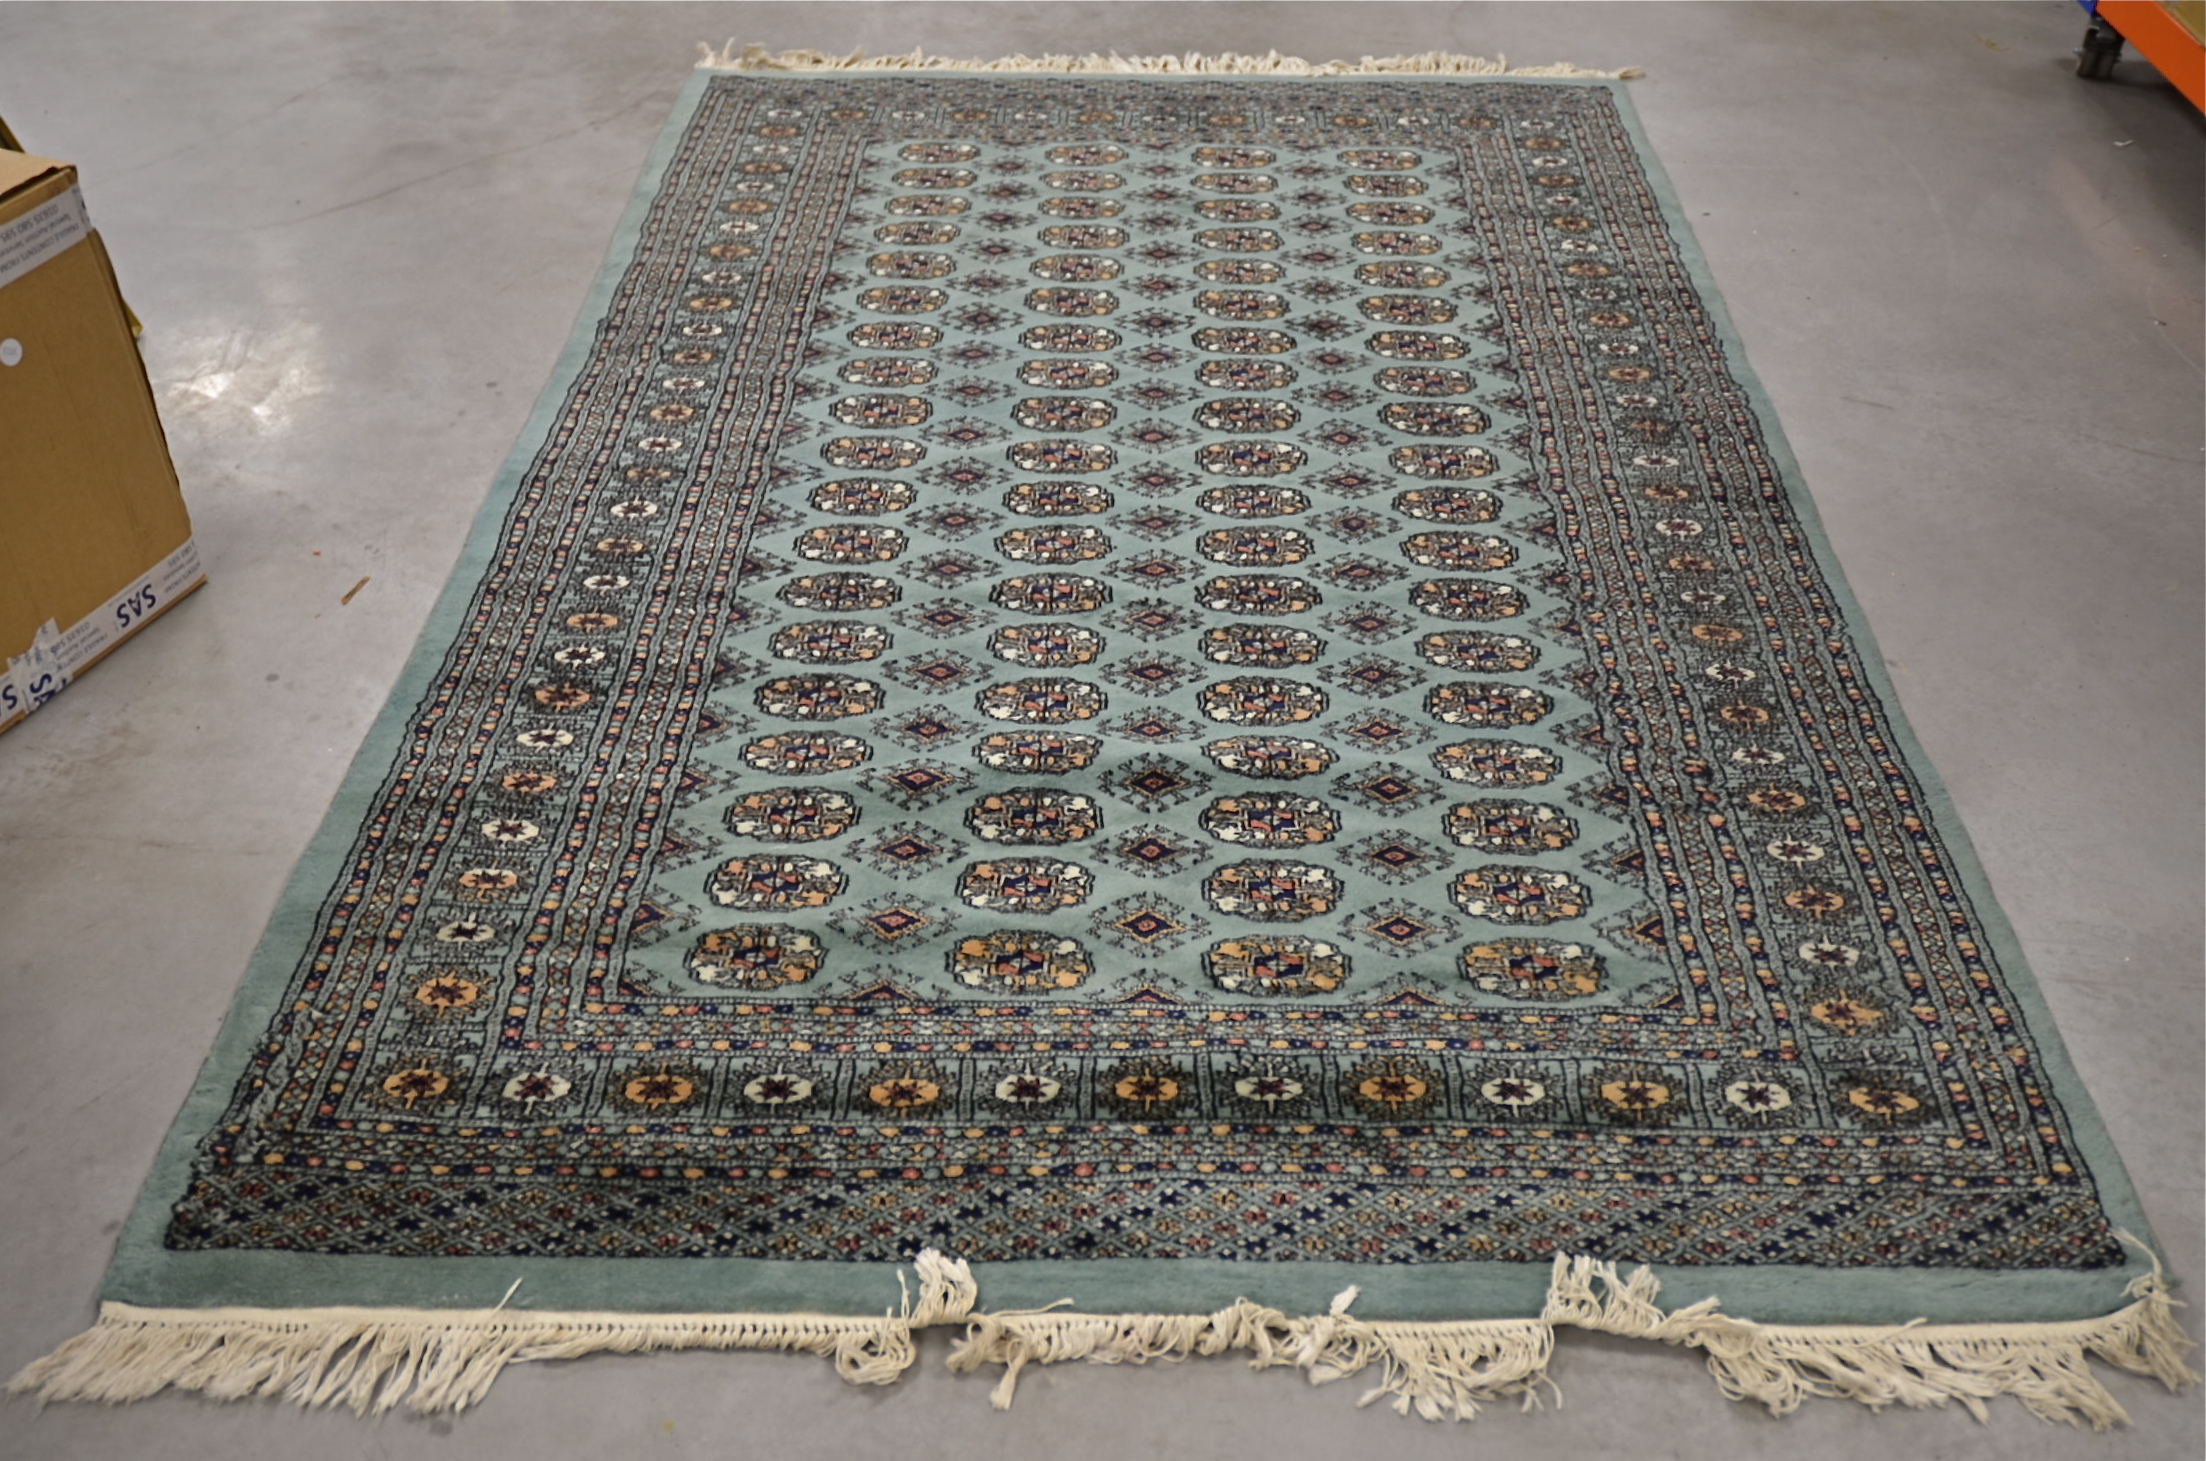 Lot 585 - A Middle Eastern 20th Century woollen rug, with a sequential geometric pattern to the central panel,